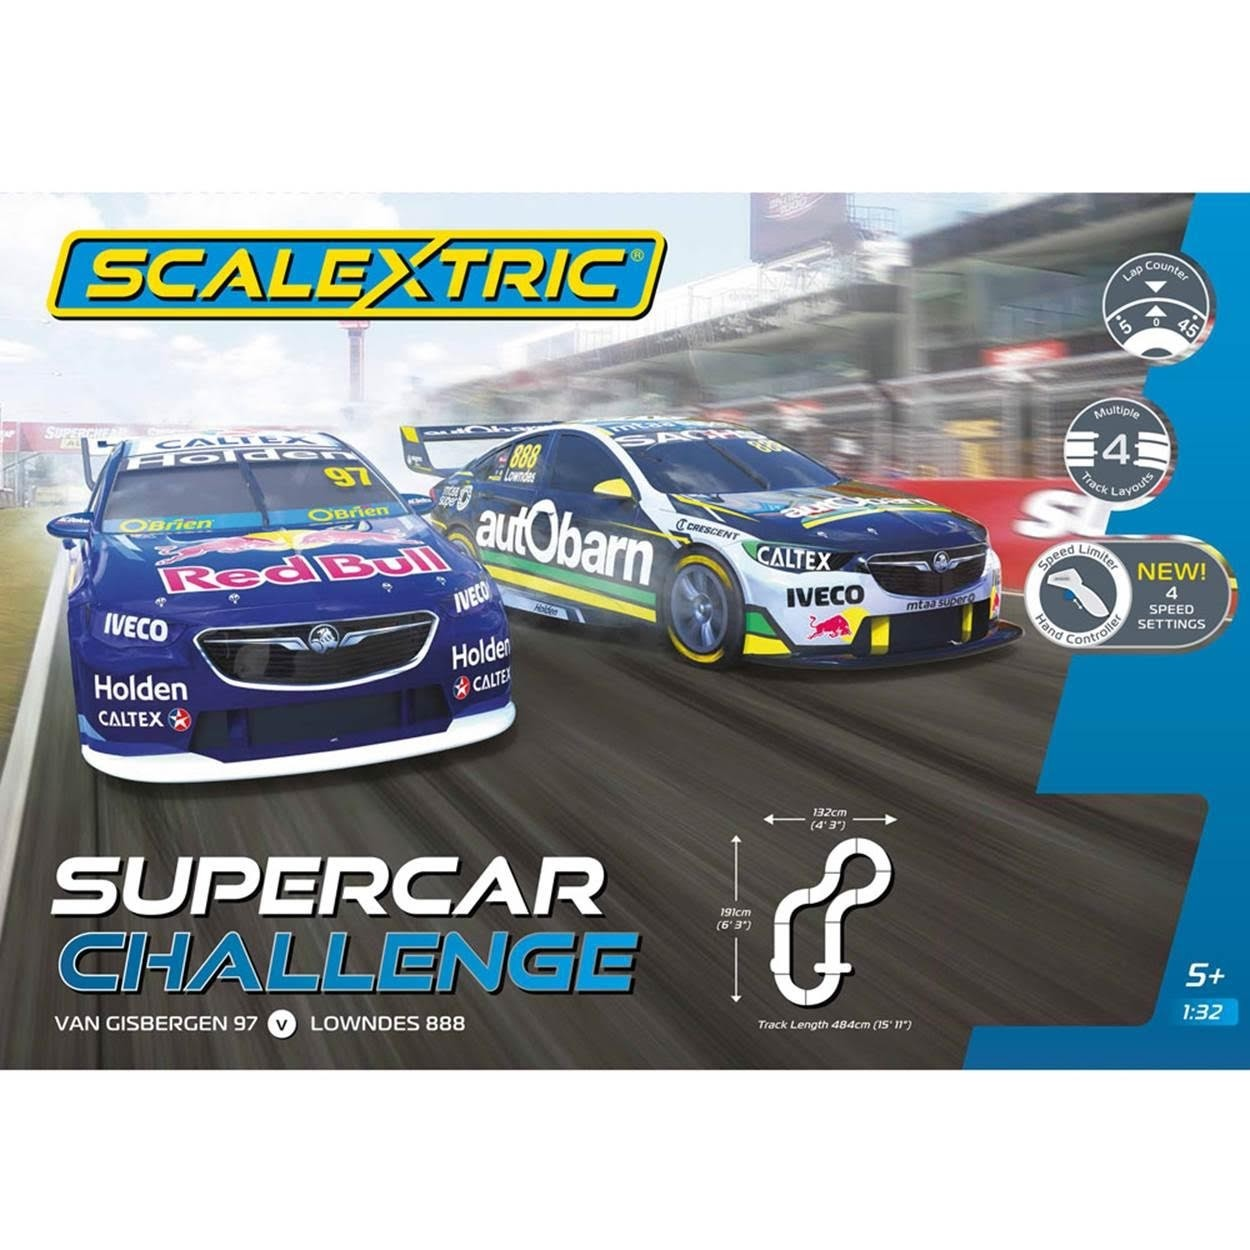 New Supercars: Scalextric Holden ZB V8 Supercar